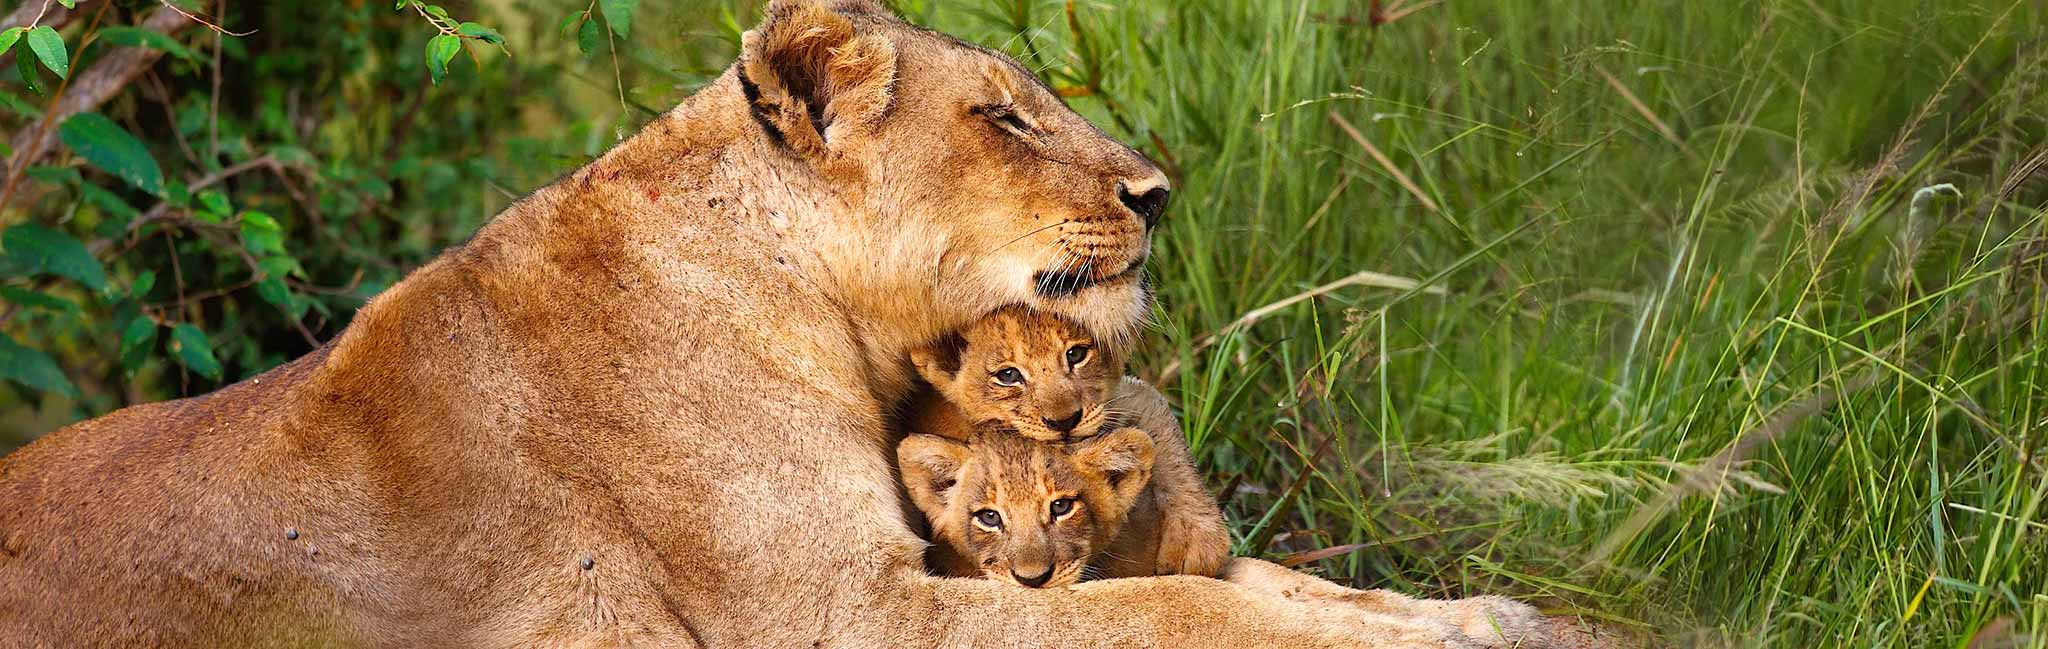 African Safari - Lioness and cubs